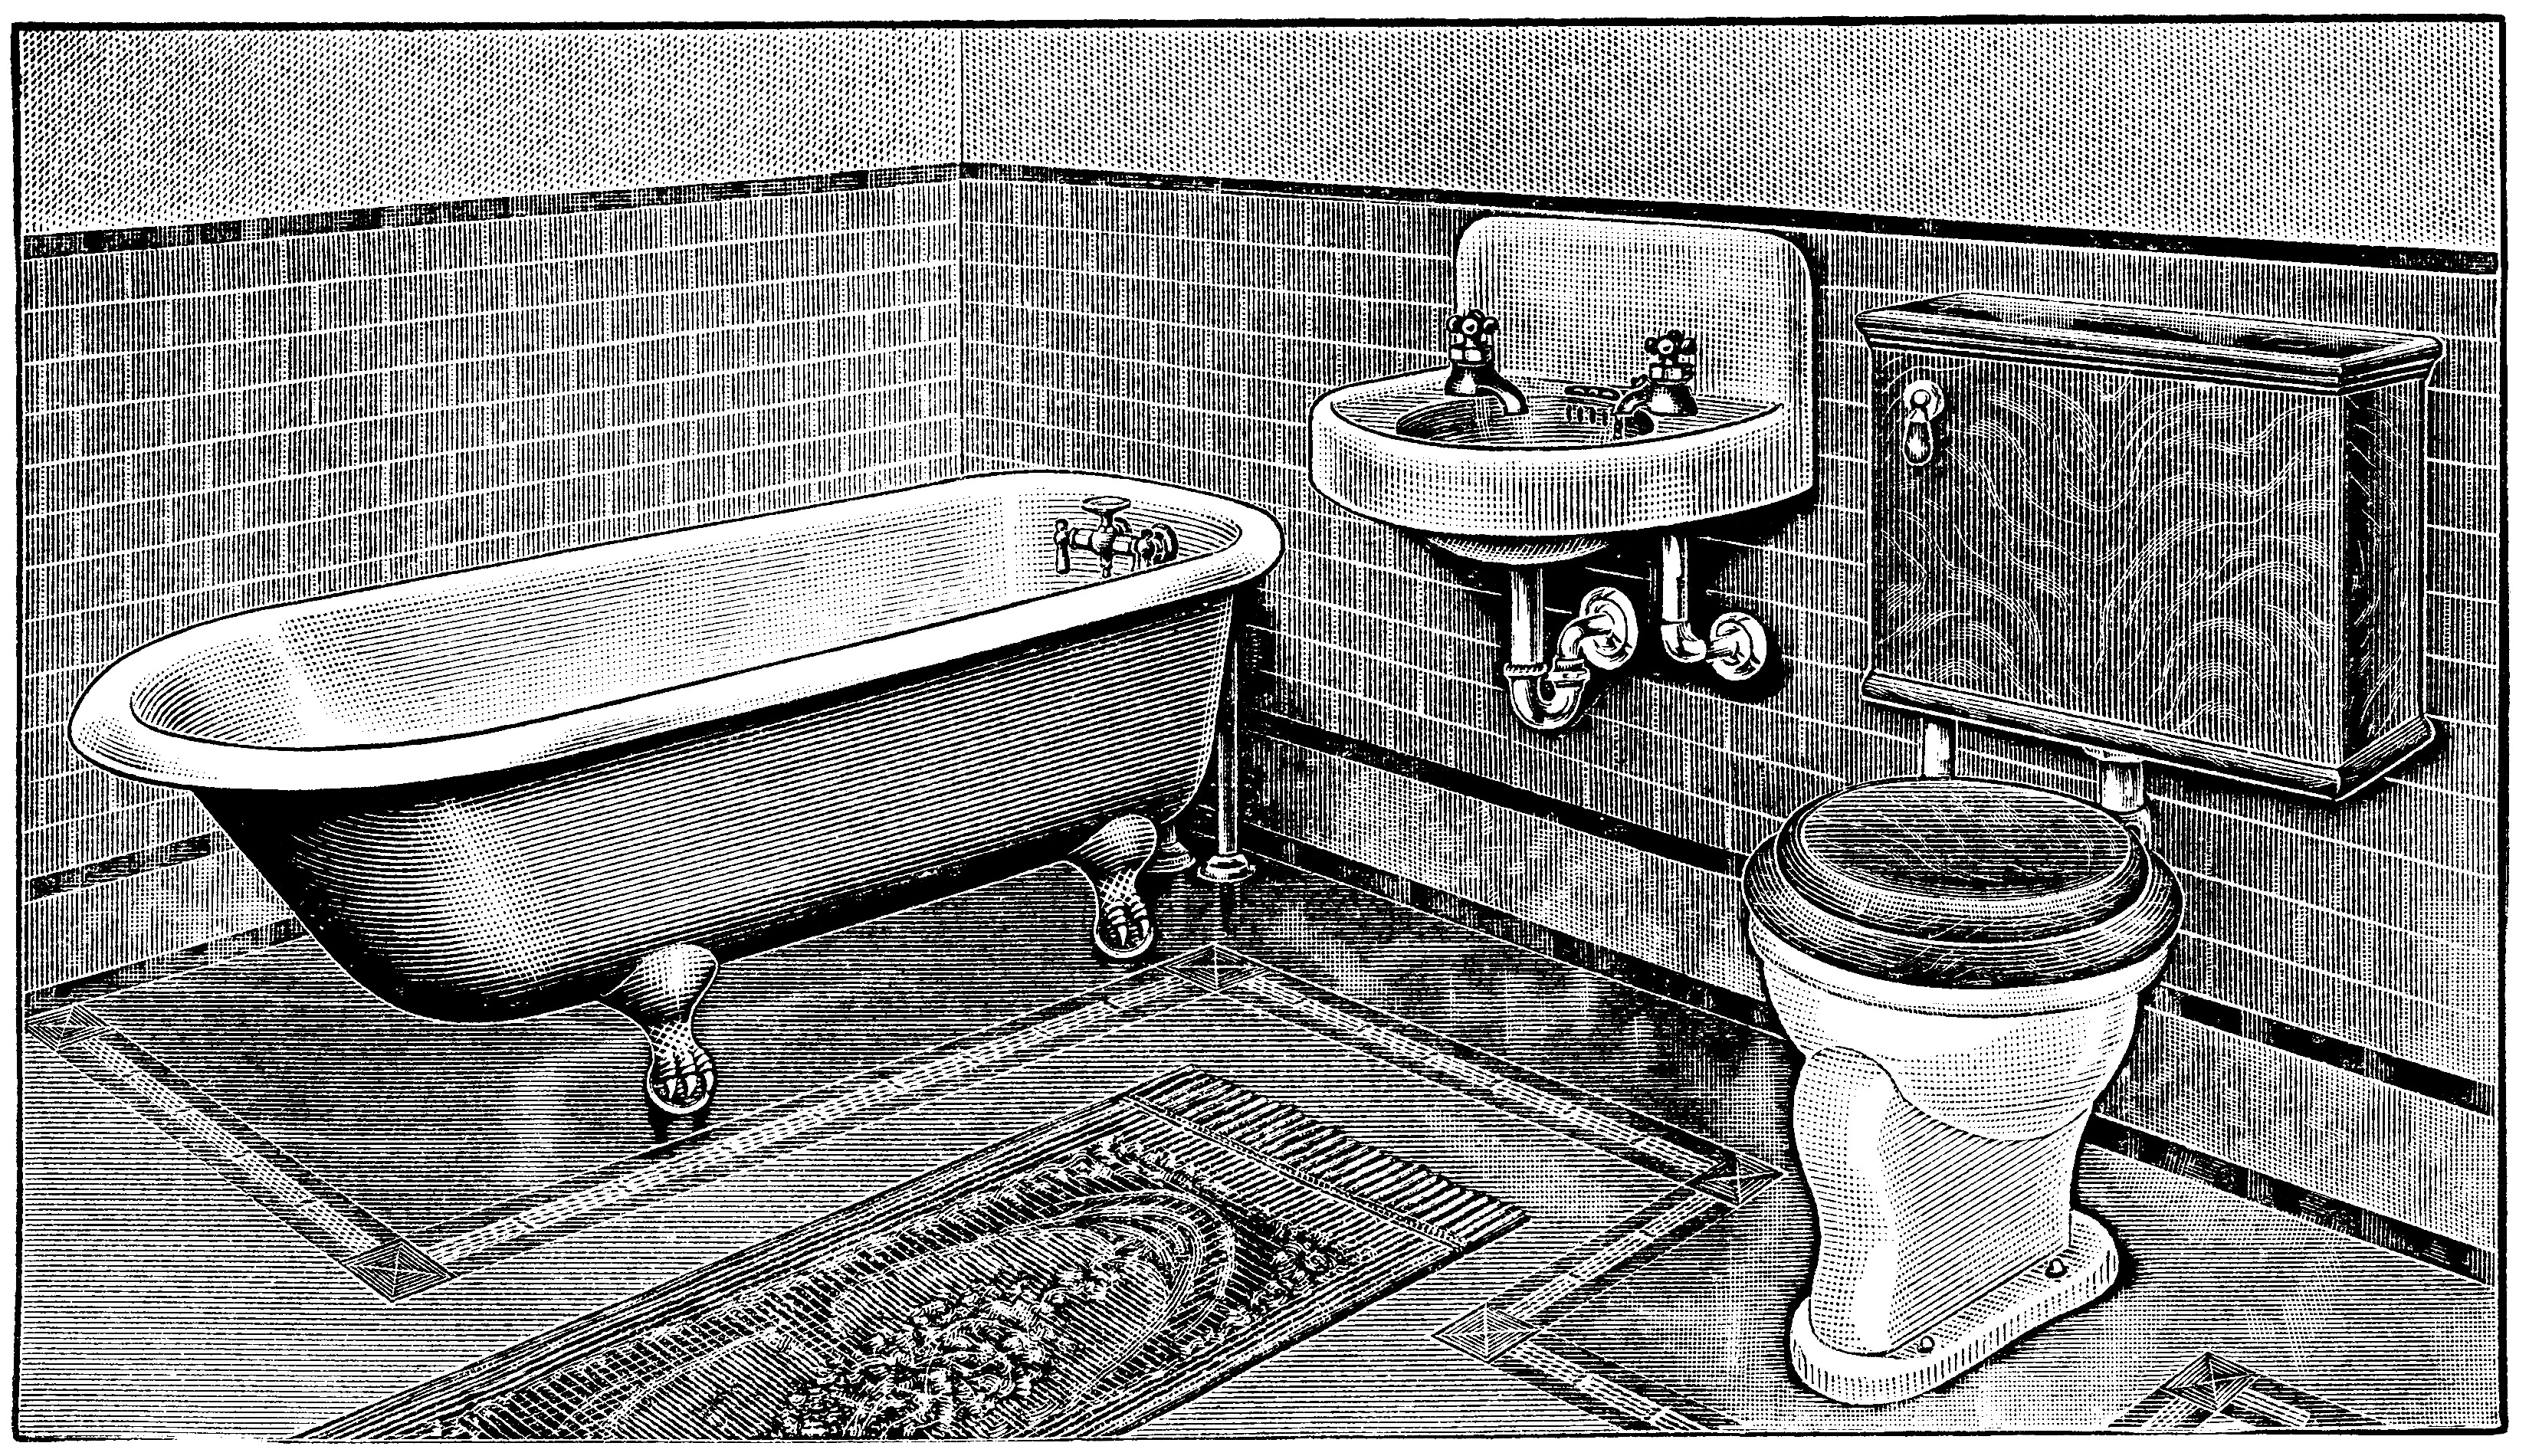 Vintage Bathroom Clip Art Claw Foot Tub Illus Antique Toilet Restroom